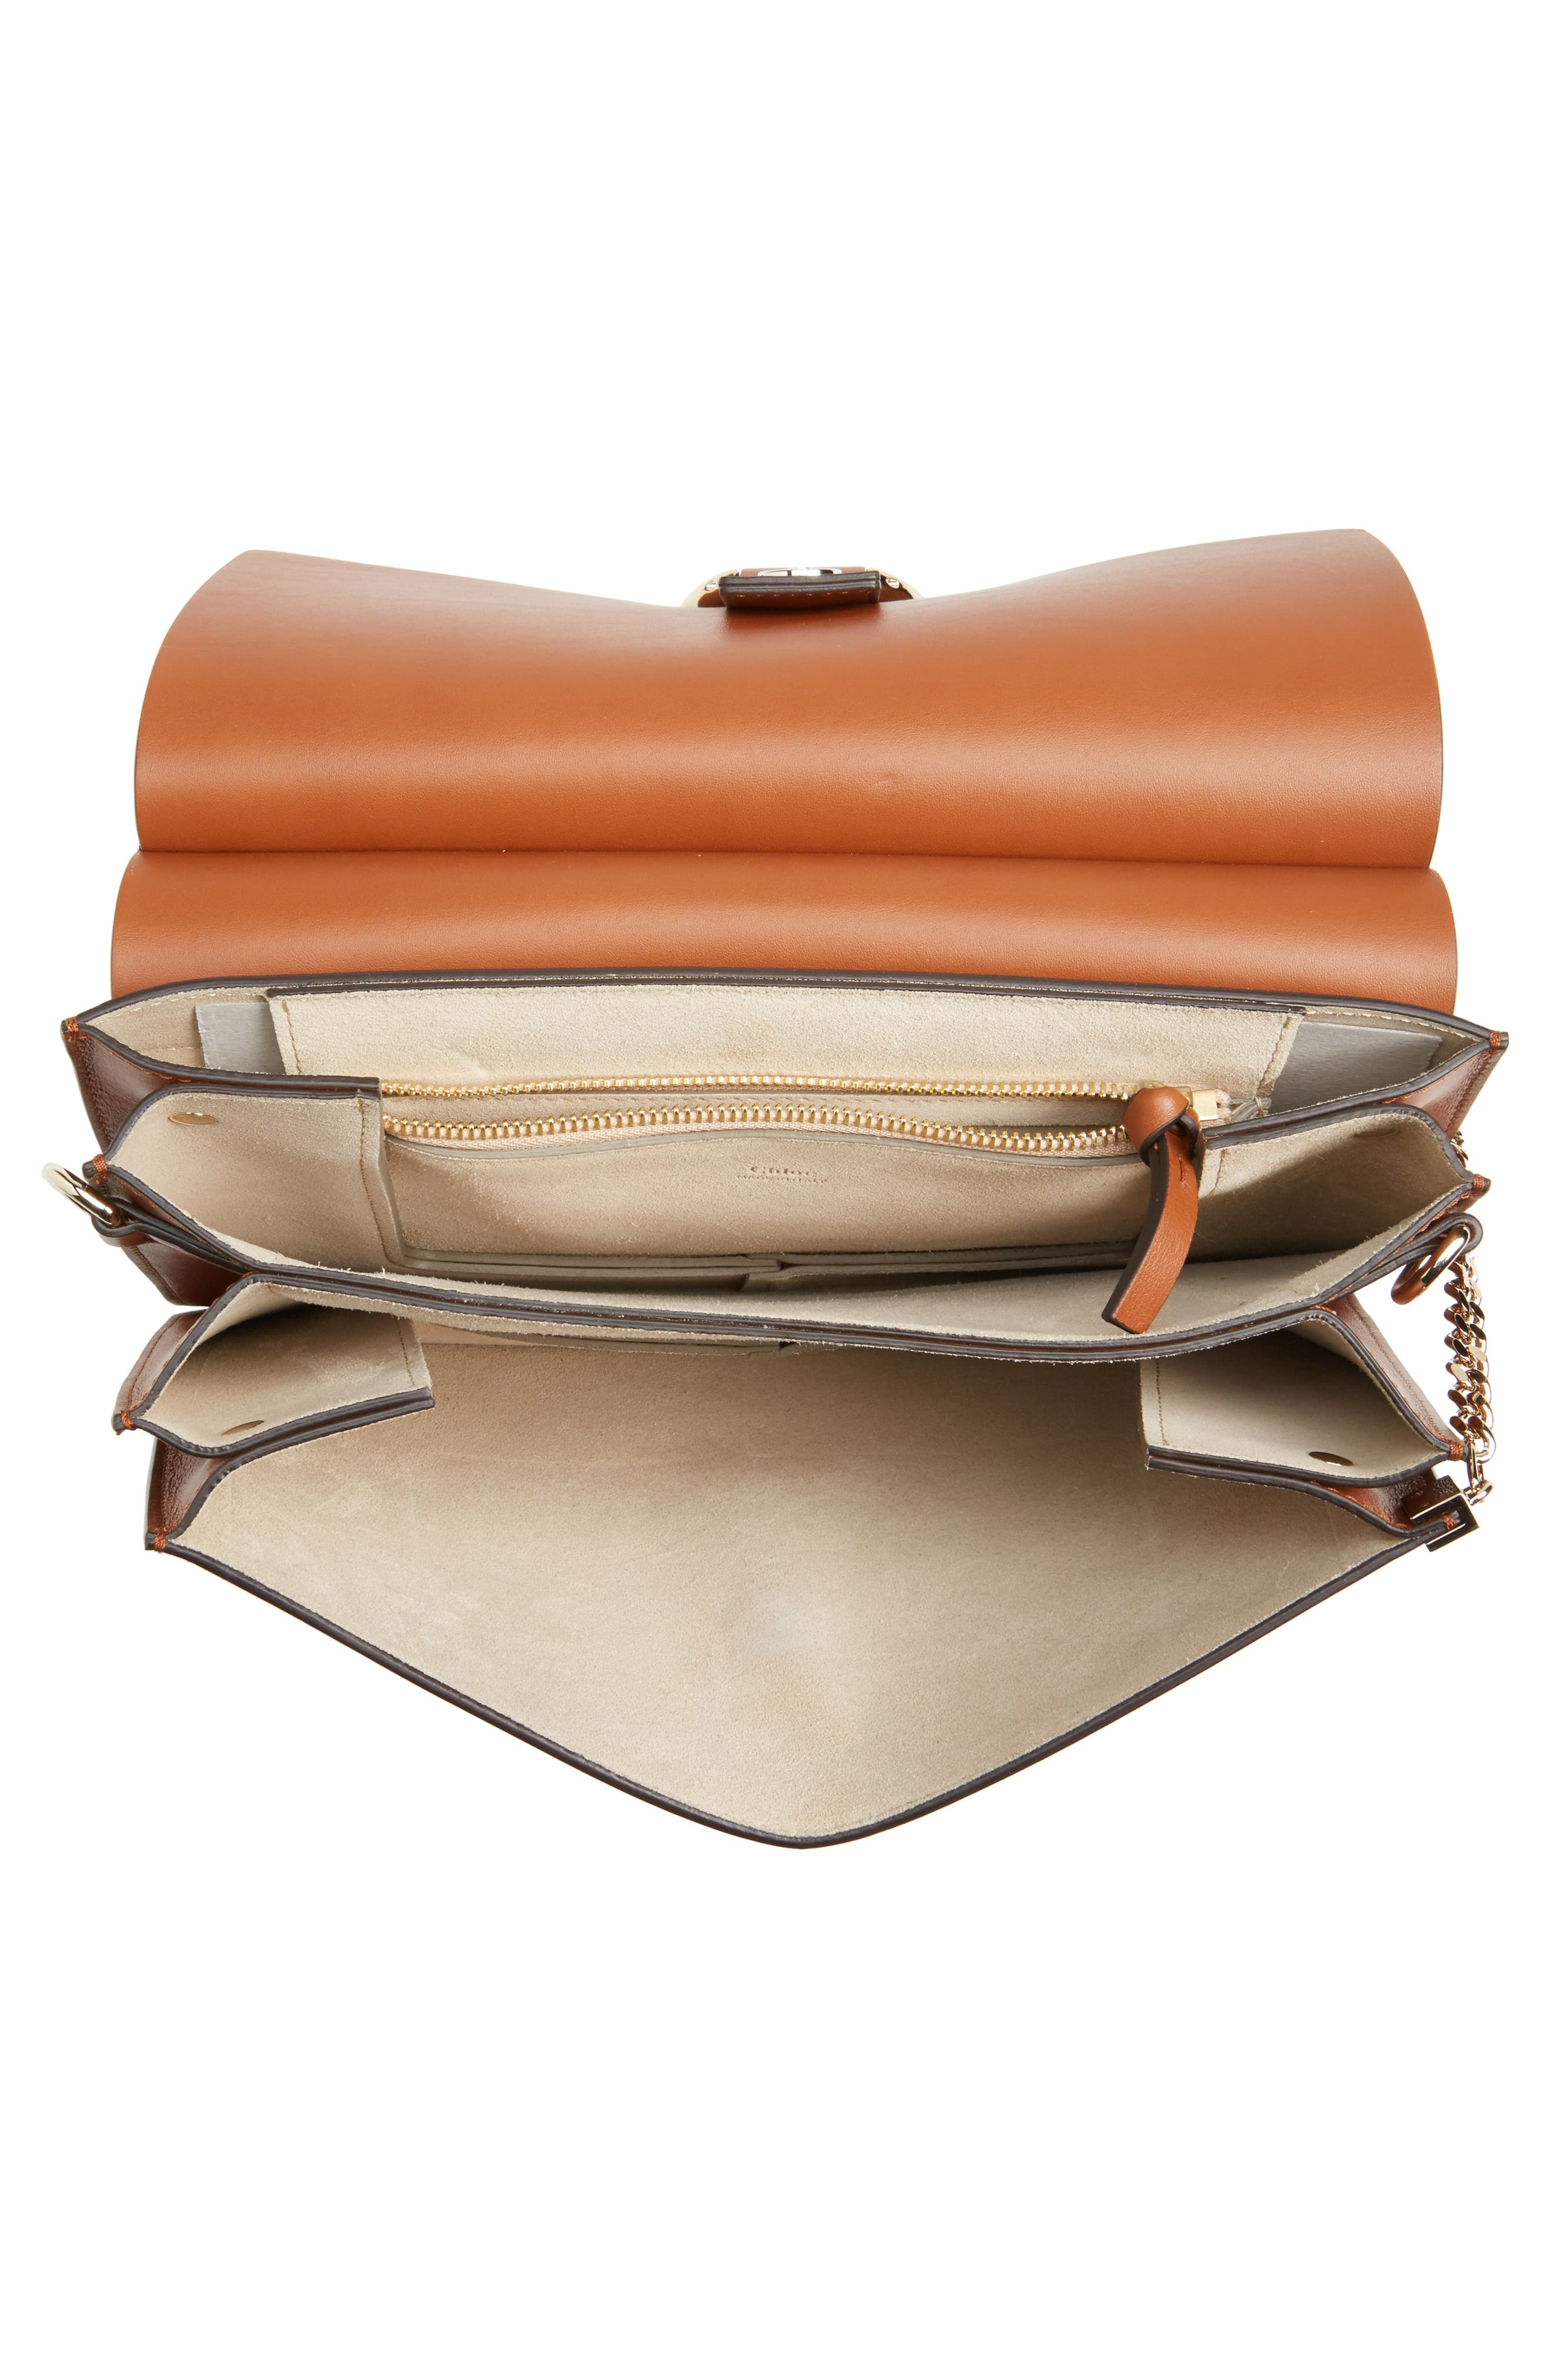 Faye Suede & Leather Shoulder Bag,                             Alternate thumbnail 4, color,                             CLASSIC TOBACCO